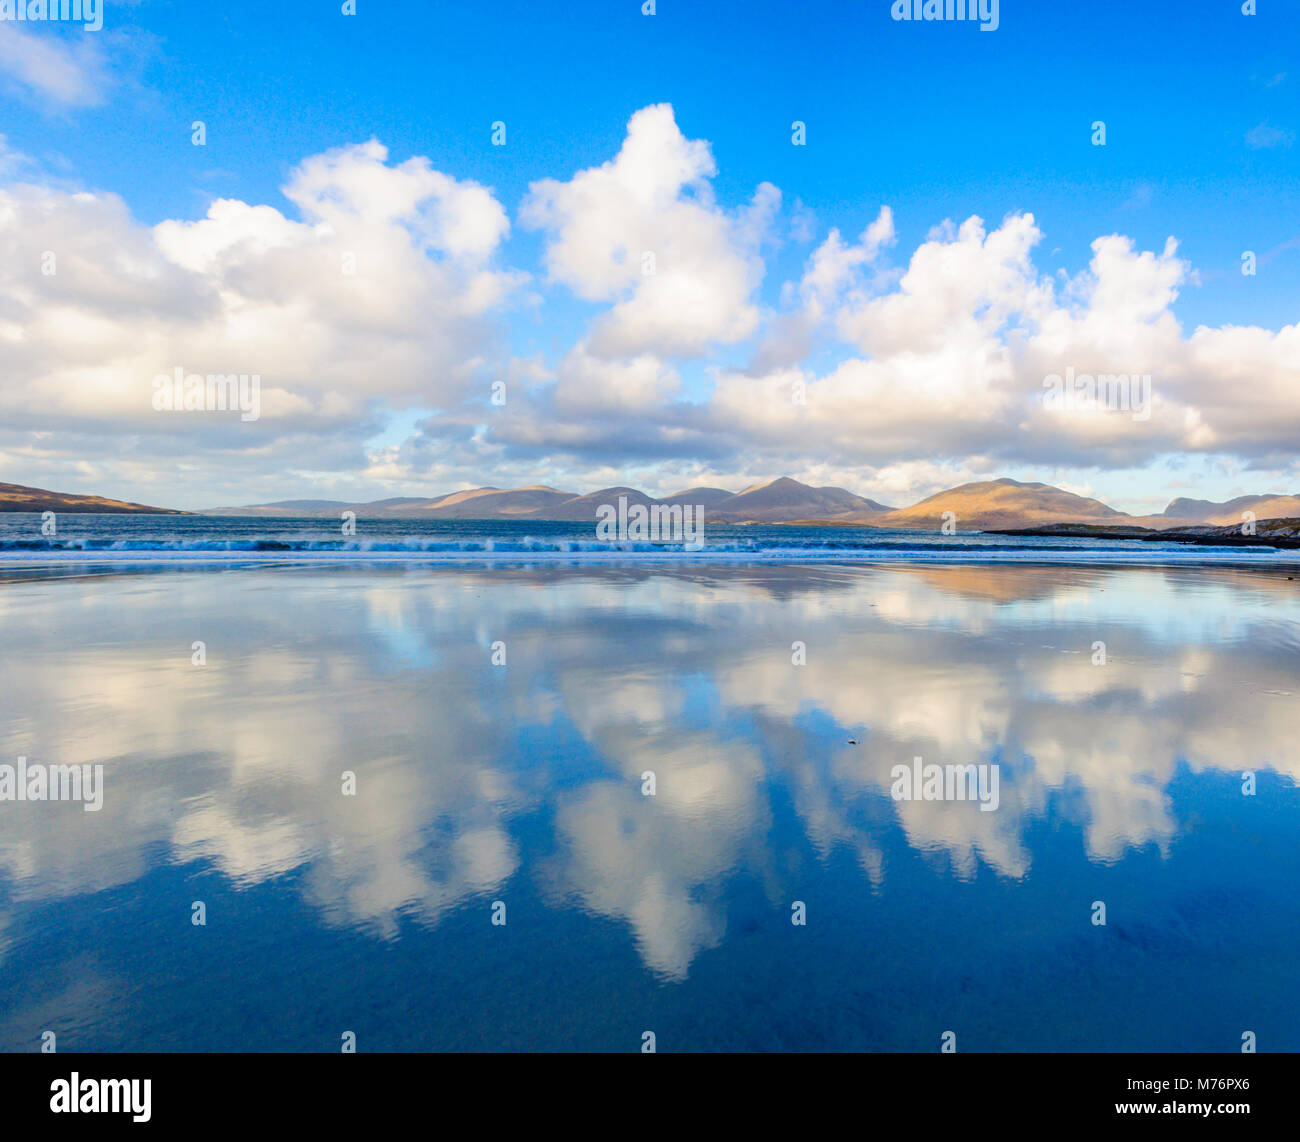 Luskentyre beach on the west coast of the Isle of Harris, Outer Hebrides, Scotland, UK on a bright sunny afternoon Stock Photo